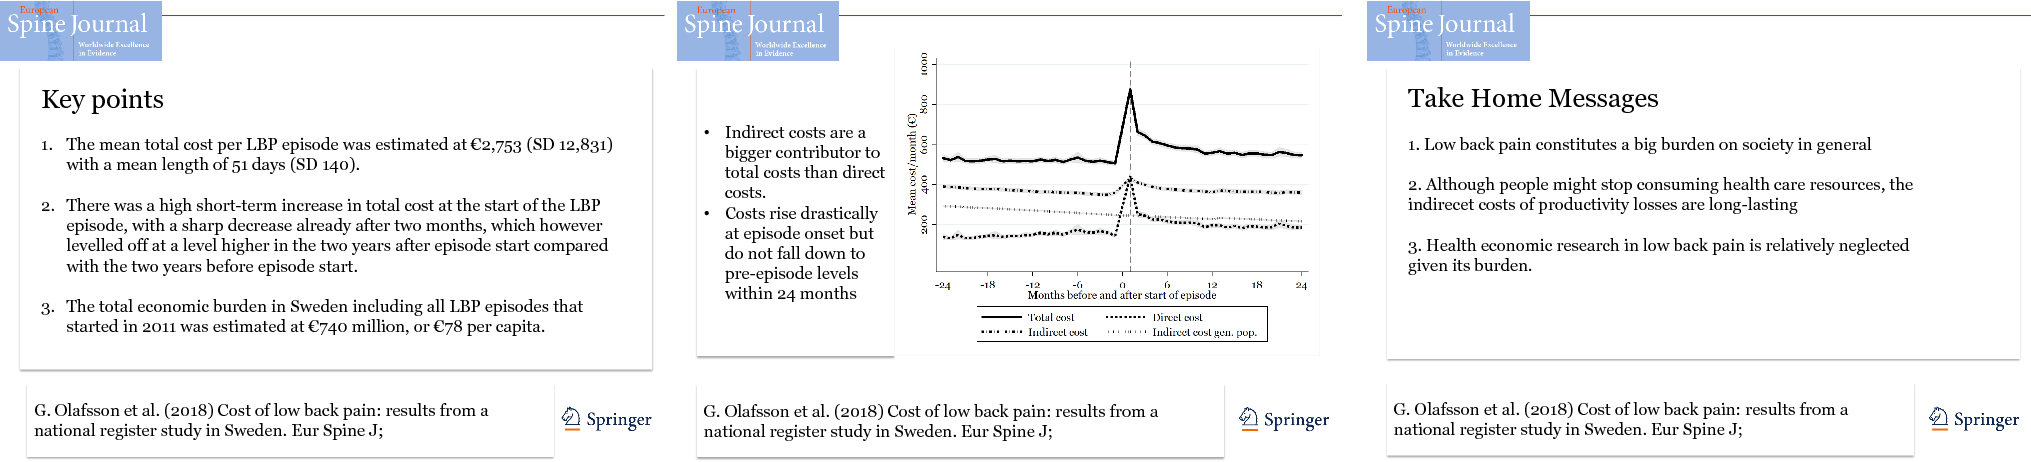 Cost of low back pain: results from a national register